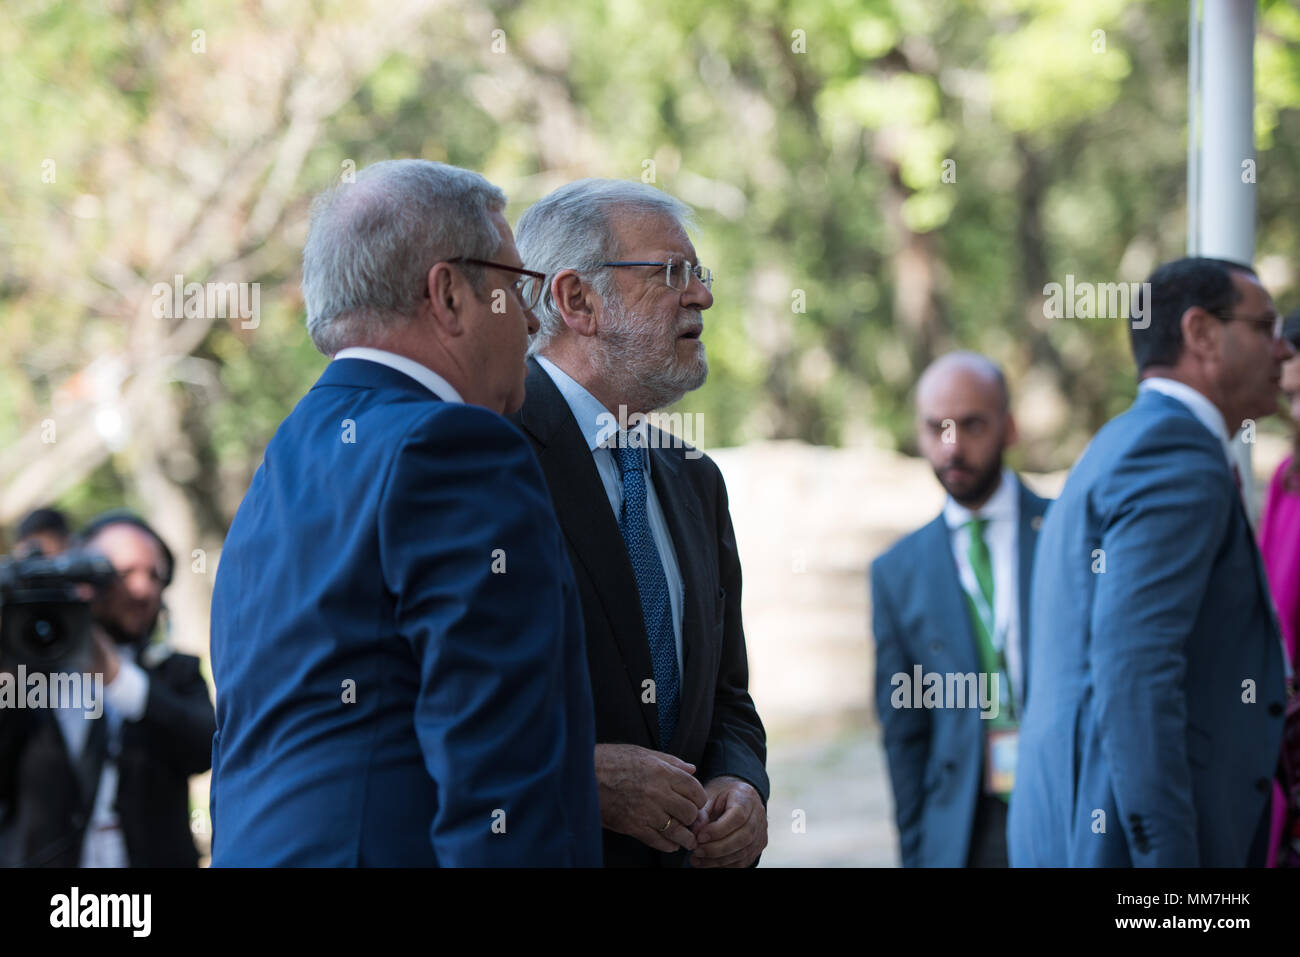 Monasterio de Yuste, Cuacos de Yuste, Spain. 9th May, 2018 - (c) Juan Carlos Rodríguez Ibarra Spanish politician of the Spanish Socialist Workers' Party (PSOE) and ex President of the Assembly of Extremadura arrives to the Carlos V Award ceremony where Antonio TAJANI, European Parliament received from Felipe VI, King of Spain the Carlos V Prize.1 Credit: Esteban Martinena Guerrero/Alamy Live News - Stock Image